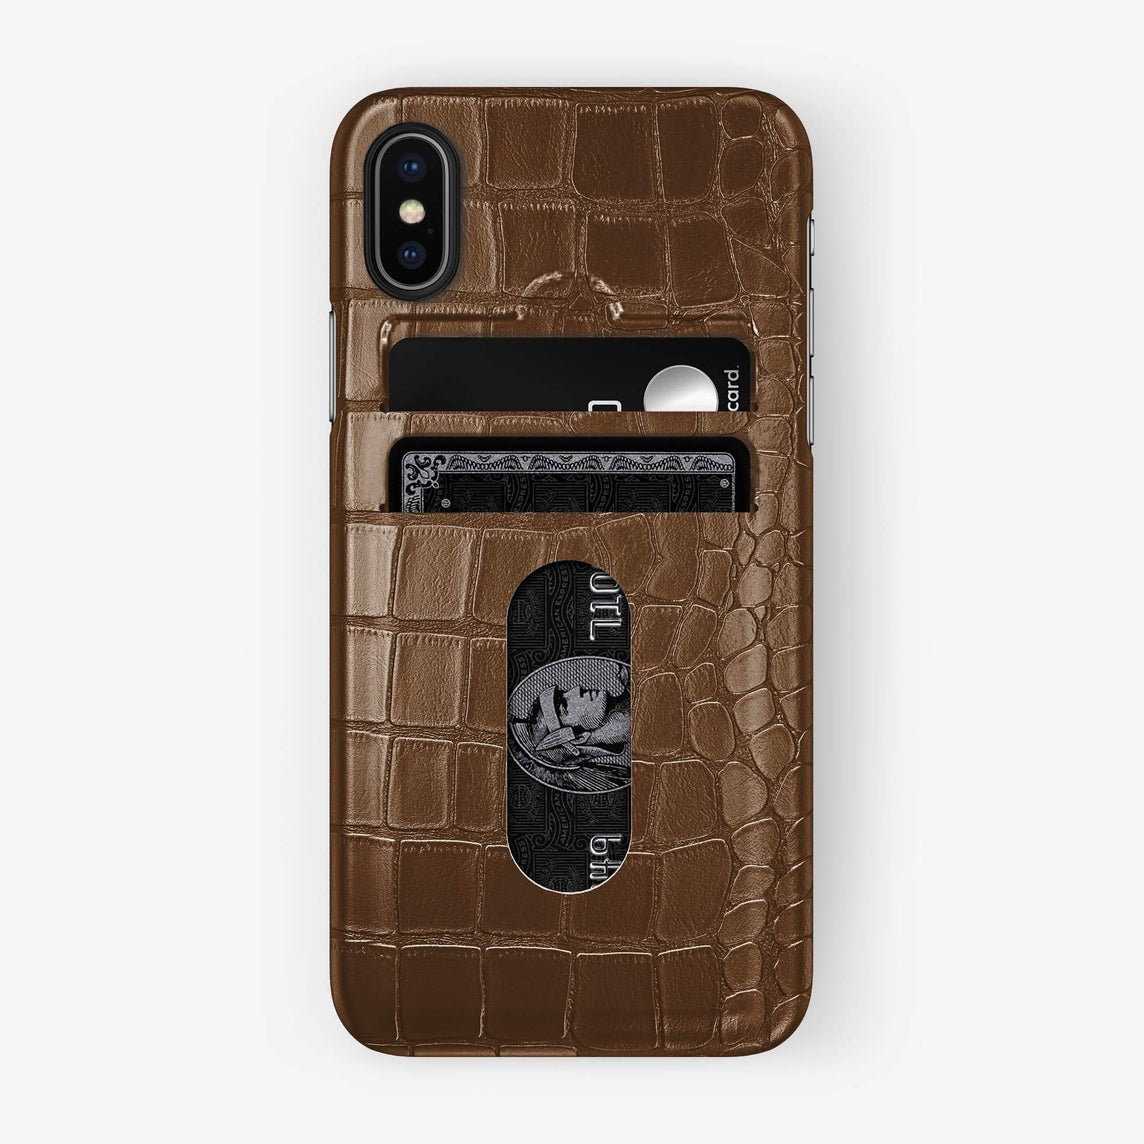 Alligator Card Holder Case iPhone Xs Max | Brown - Black - Hadoro